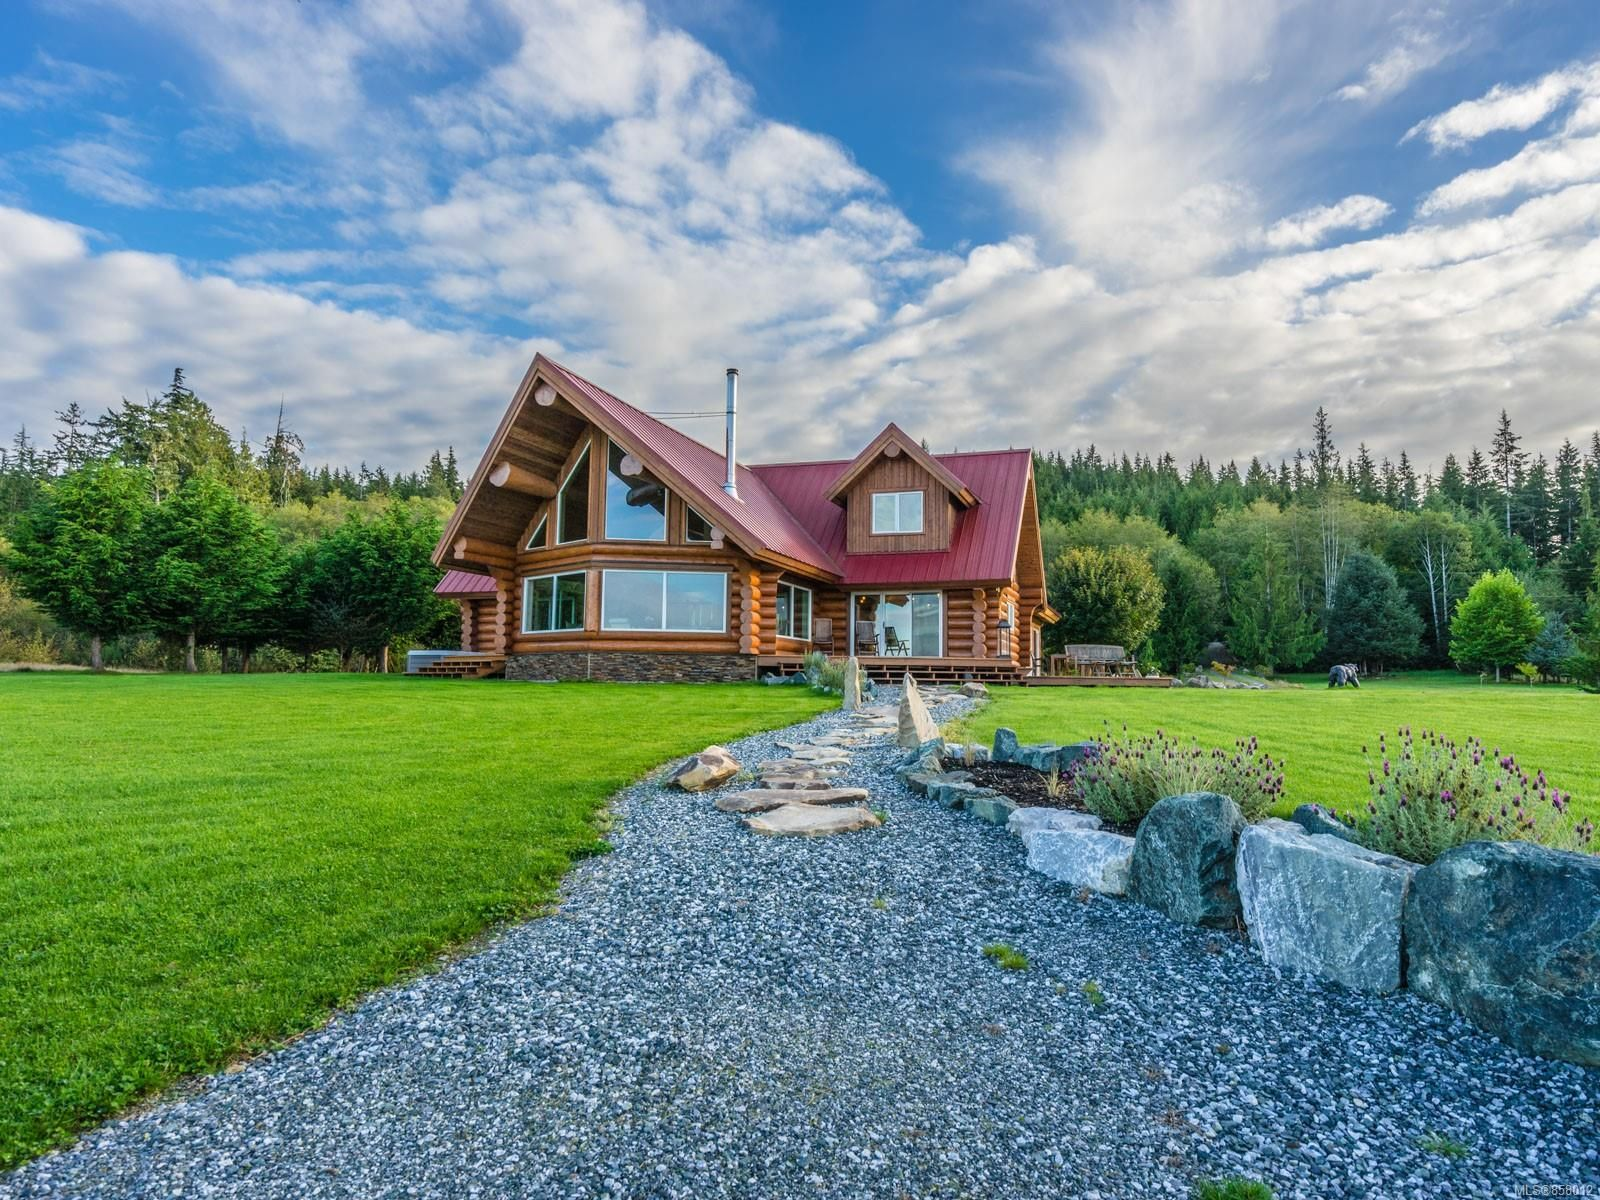 Photo 81: Photos: 6030 MINE Rd in : NI Port McNeill House for sale (North Island)  : MLS®# 858012